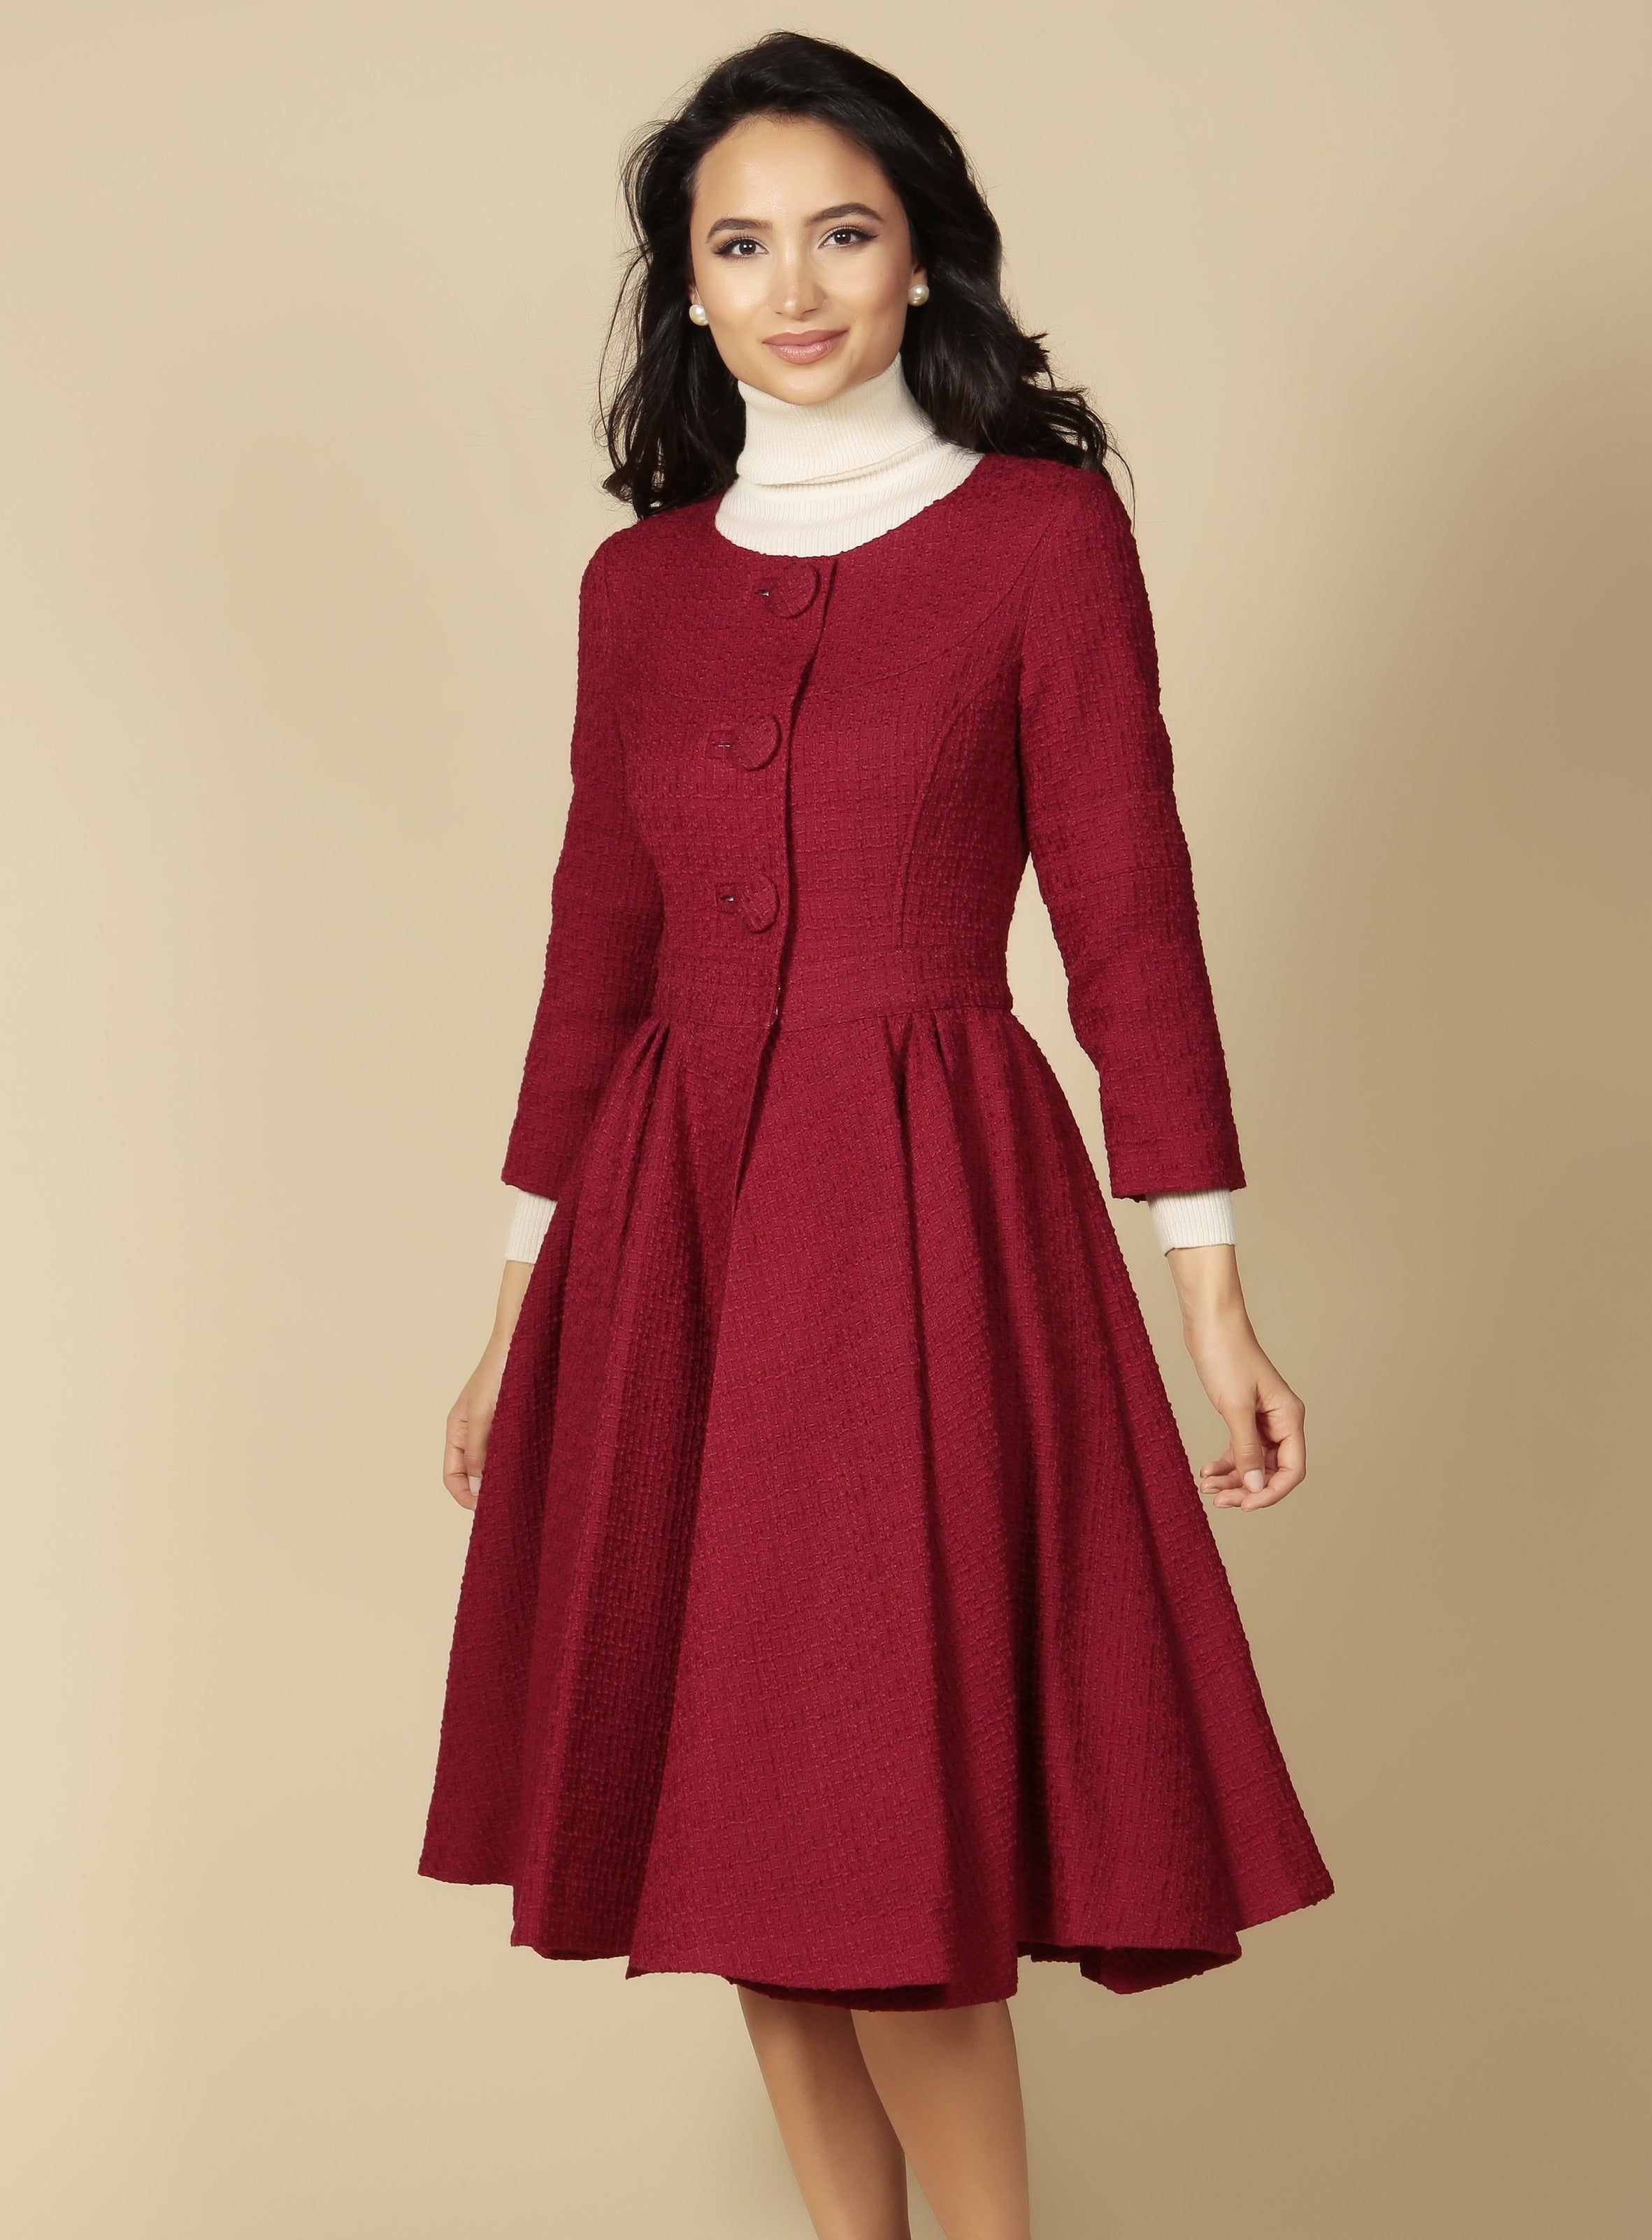 'My Fair Lady' Italian Wool Swing Dress Coat in Rosso